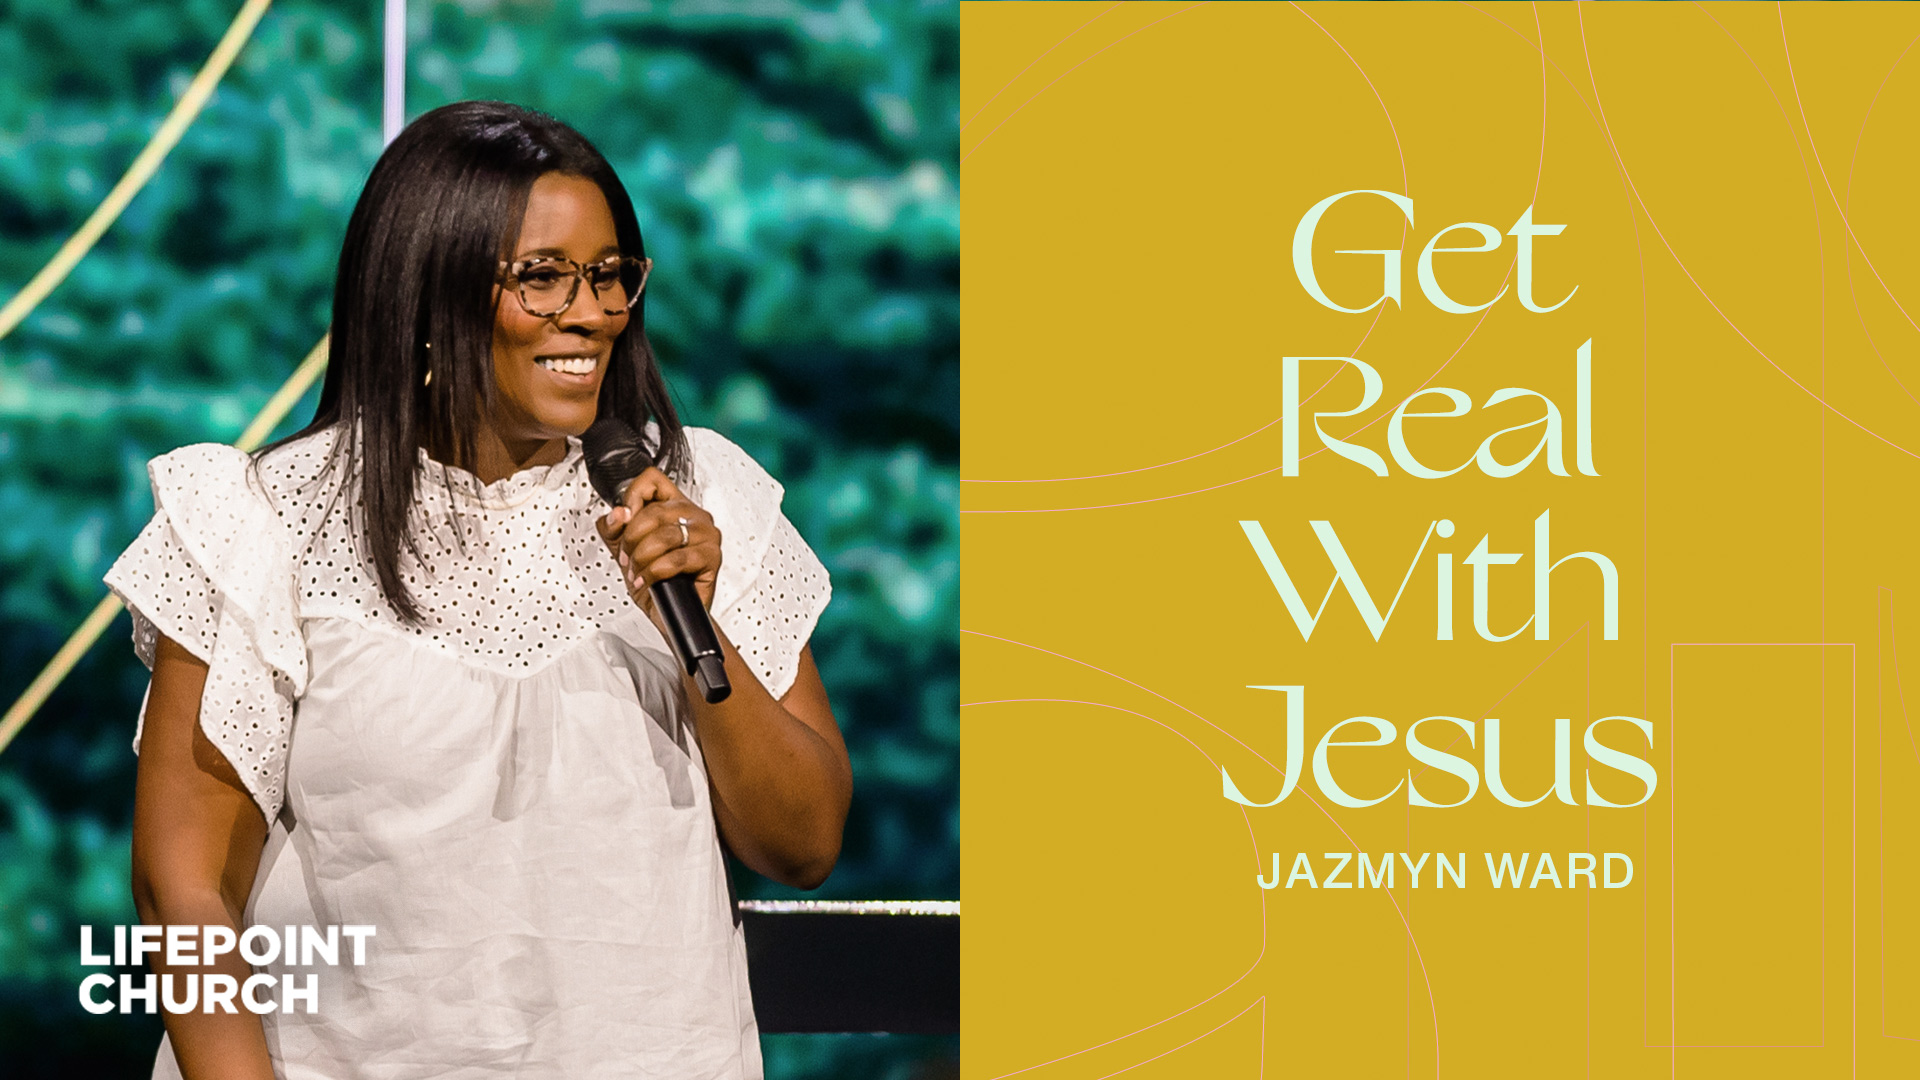 Get Real With Jesus